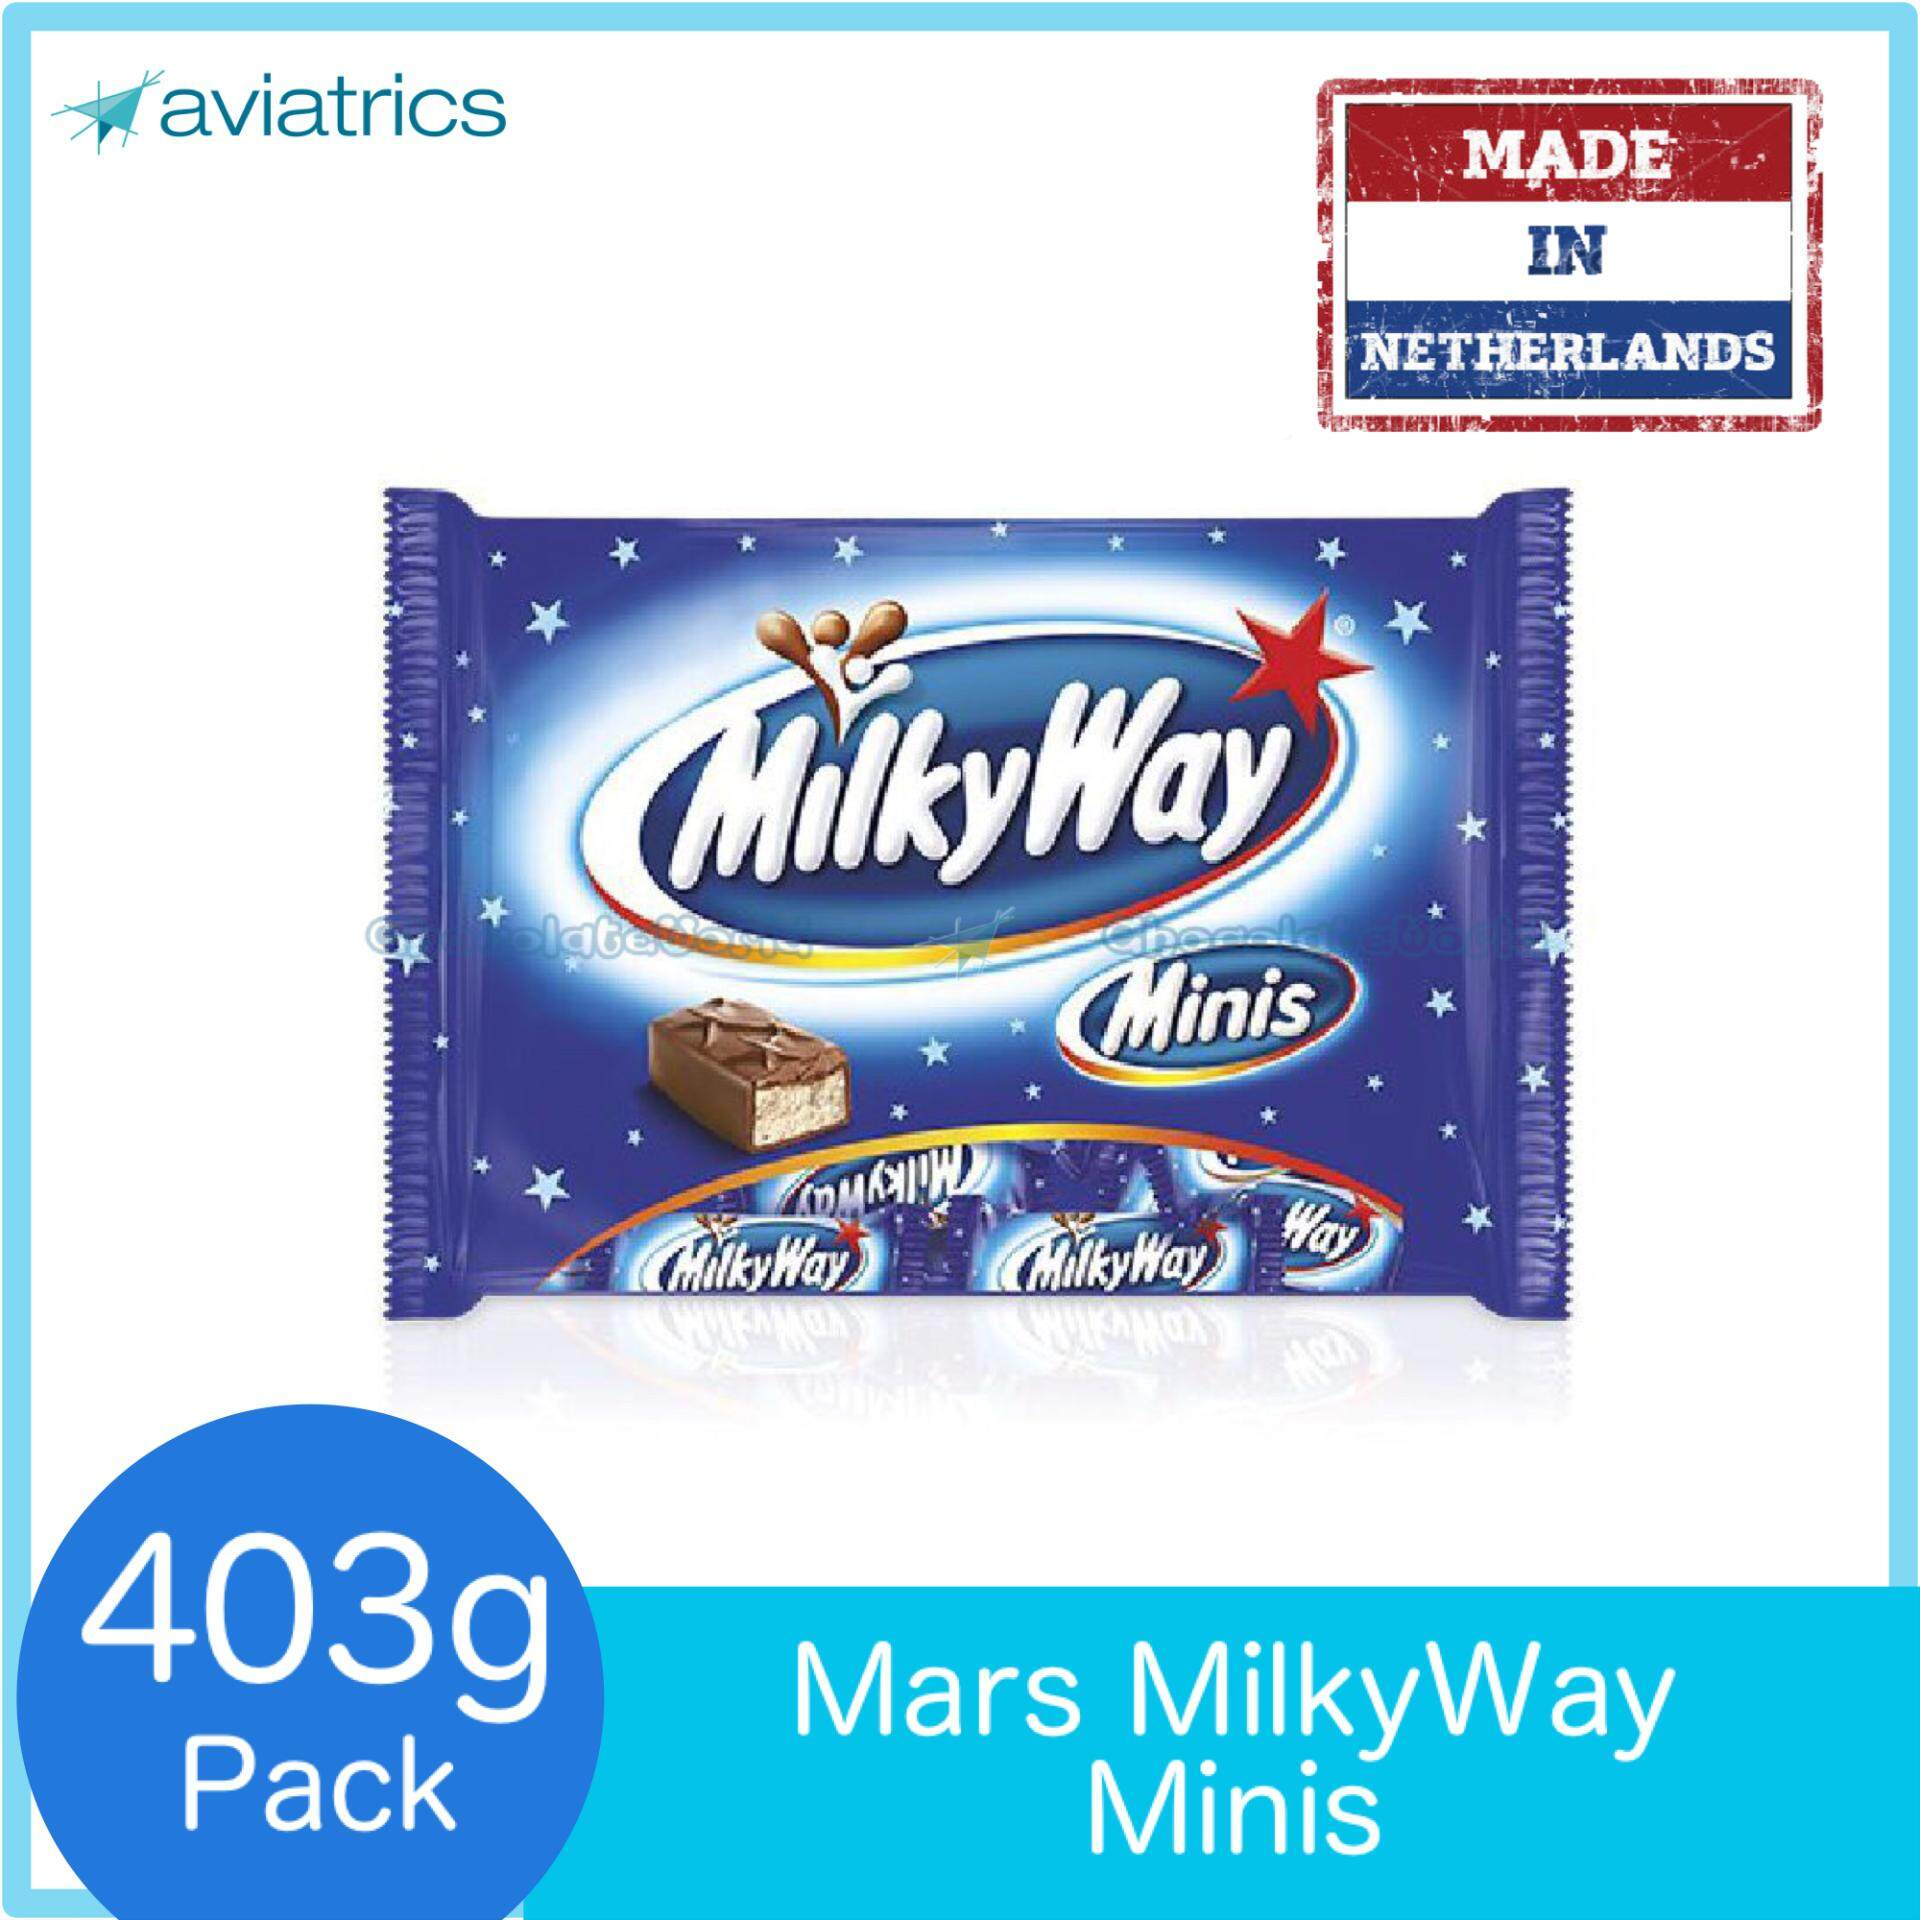 Candy Chocolate Buy At Best Price In Malaysia Nestea Thai Milk Tea Isi 13 Pcs Mars Milkyway Minis 14pcs Funpack 403g Milky Way Made Netherlands